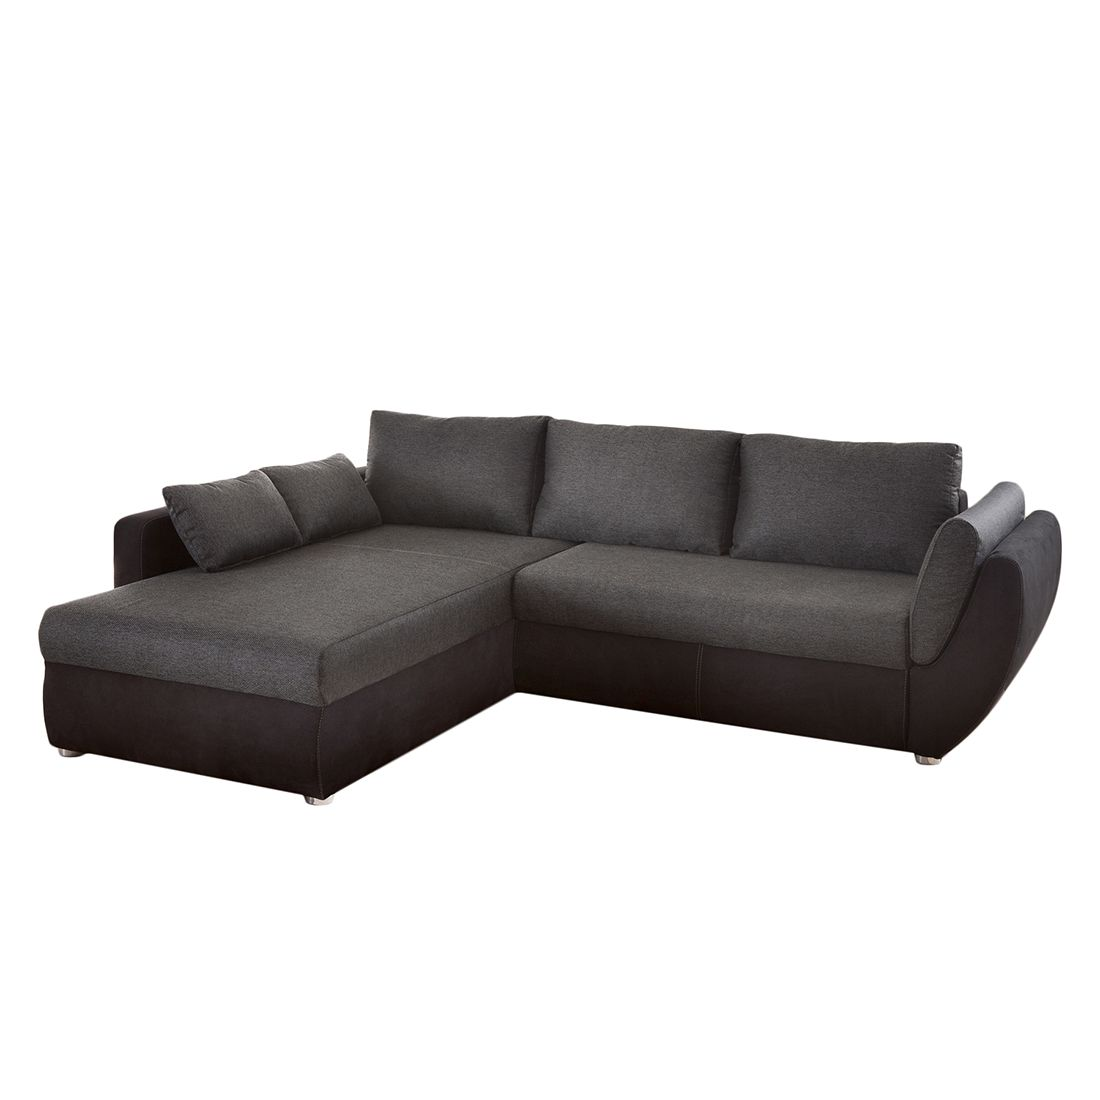 ecksofa kuhmo webstoff dunkelgrau microfaser schwarz ottomane beidseitig montierbar home. Black Bedroom Furniture Sets. Home Design Ideas